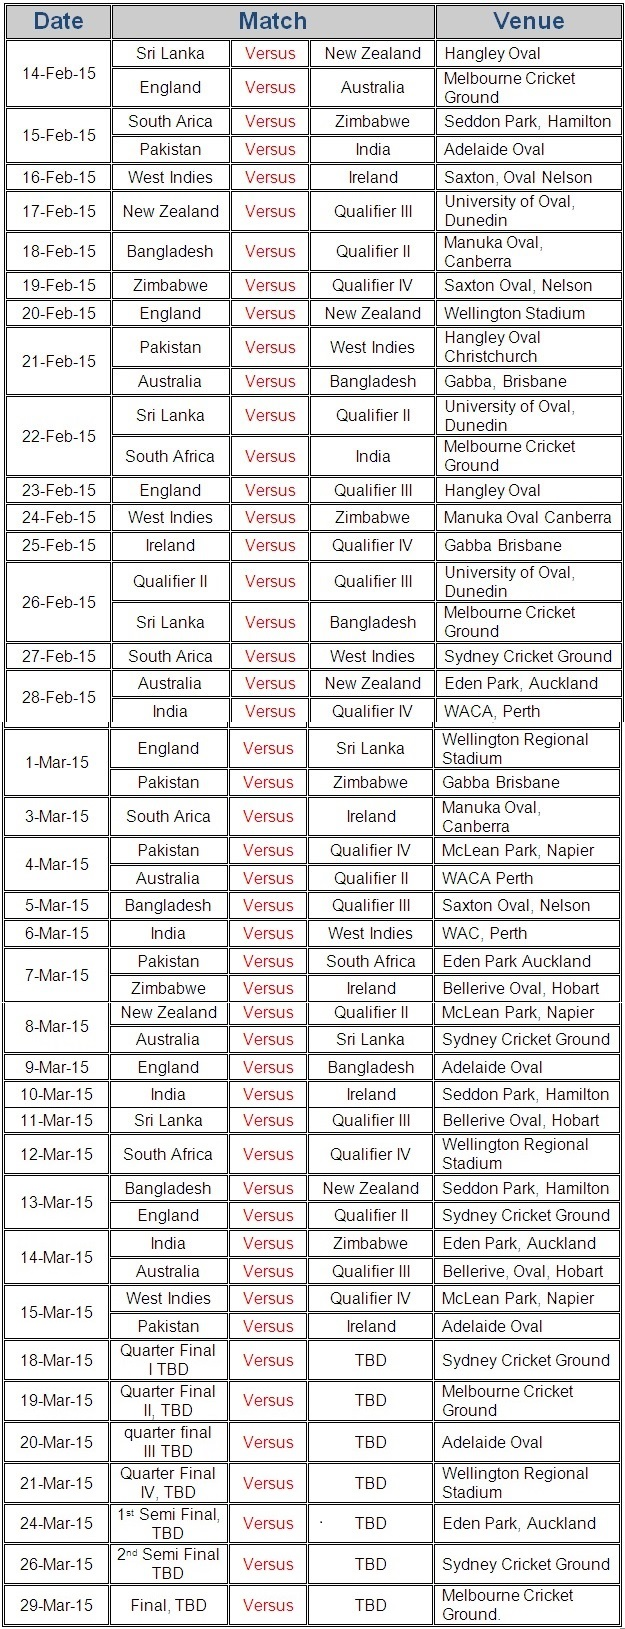 Schedule of ICC ODI Cricket World Cup 2015